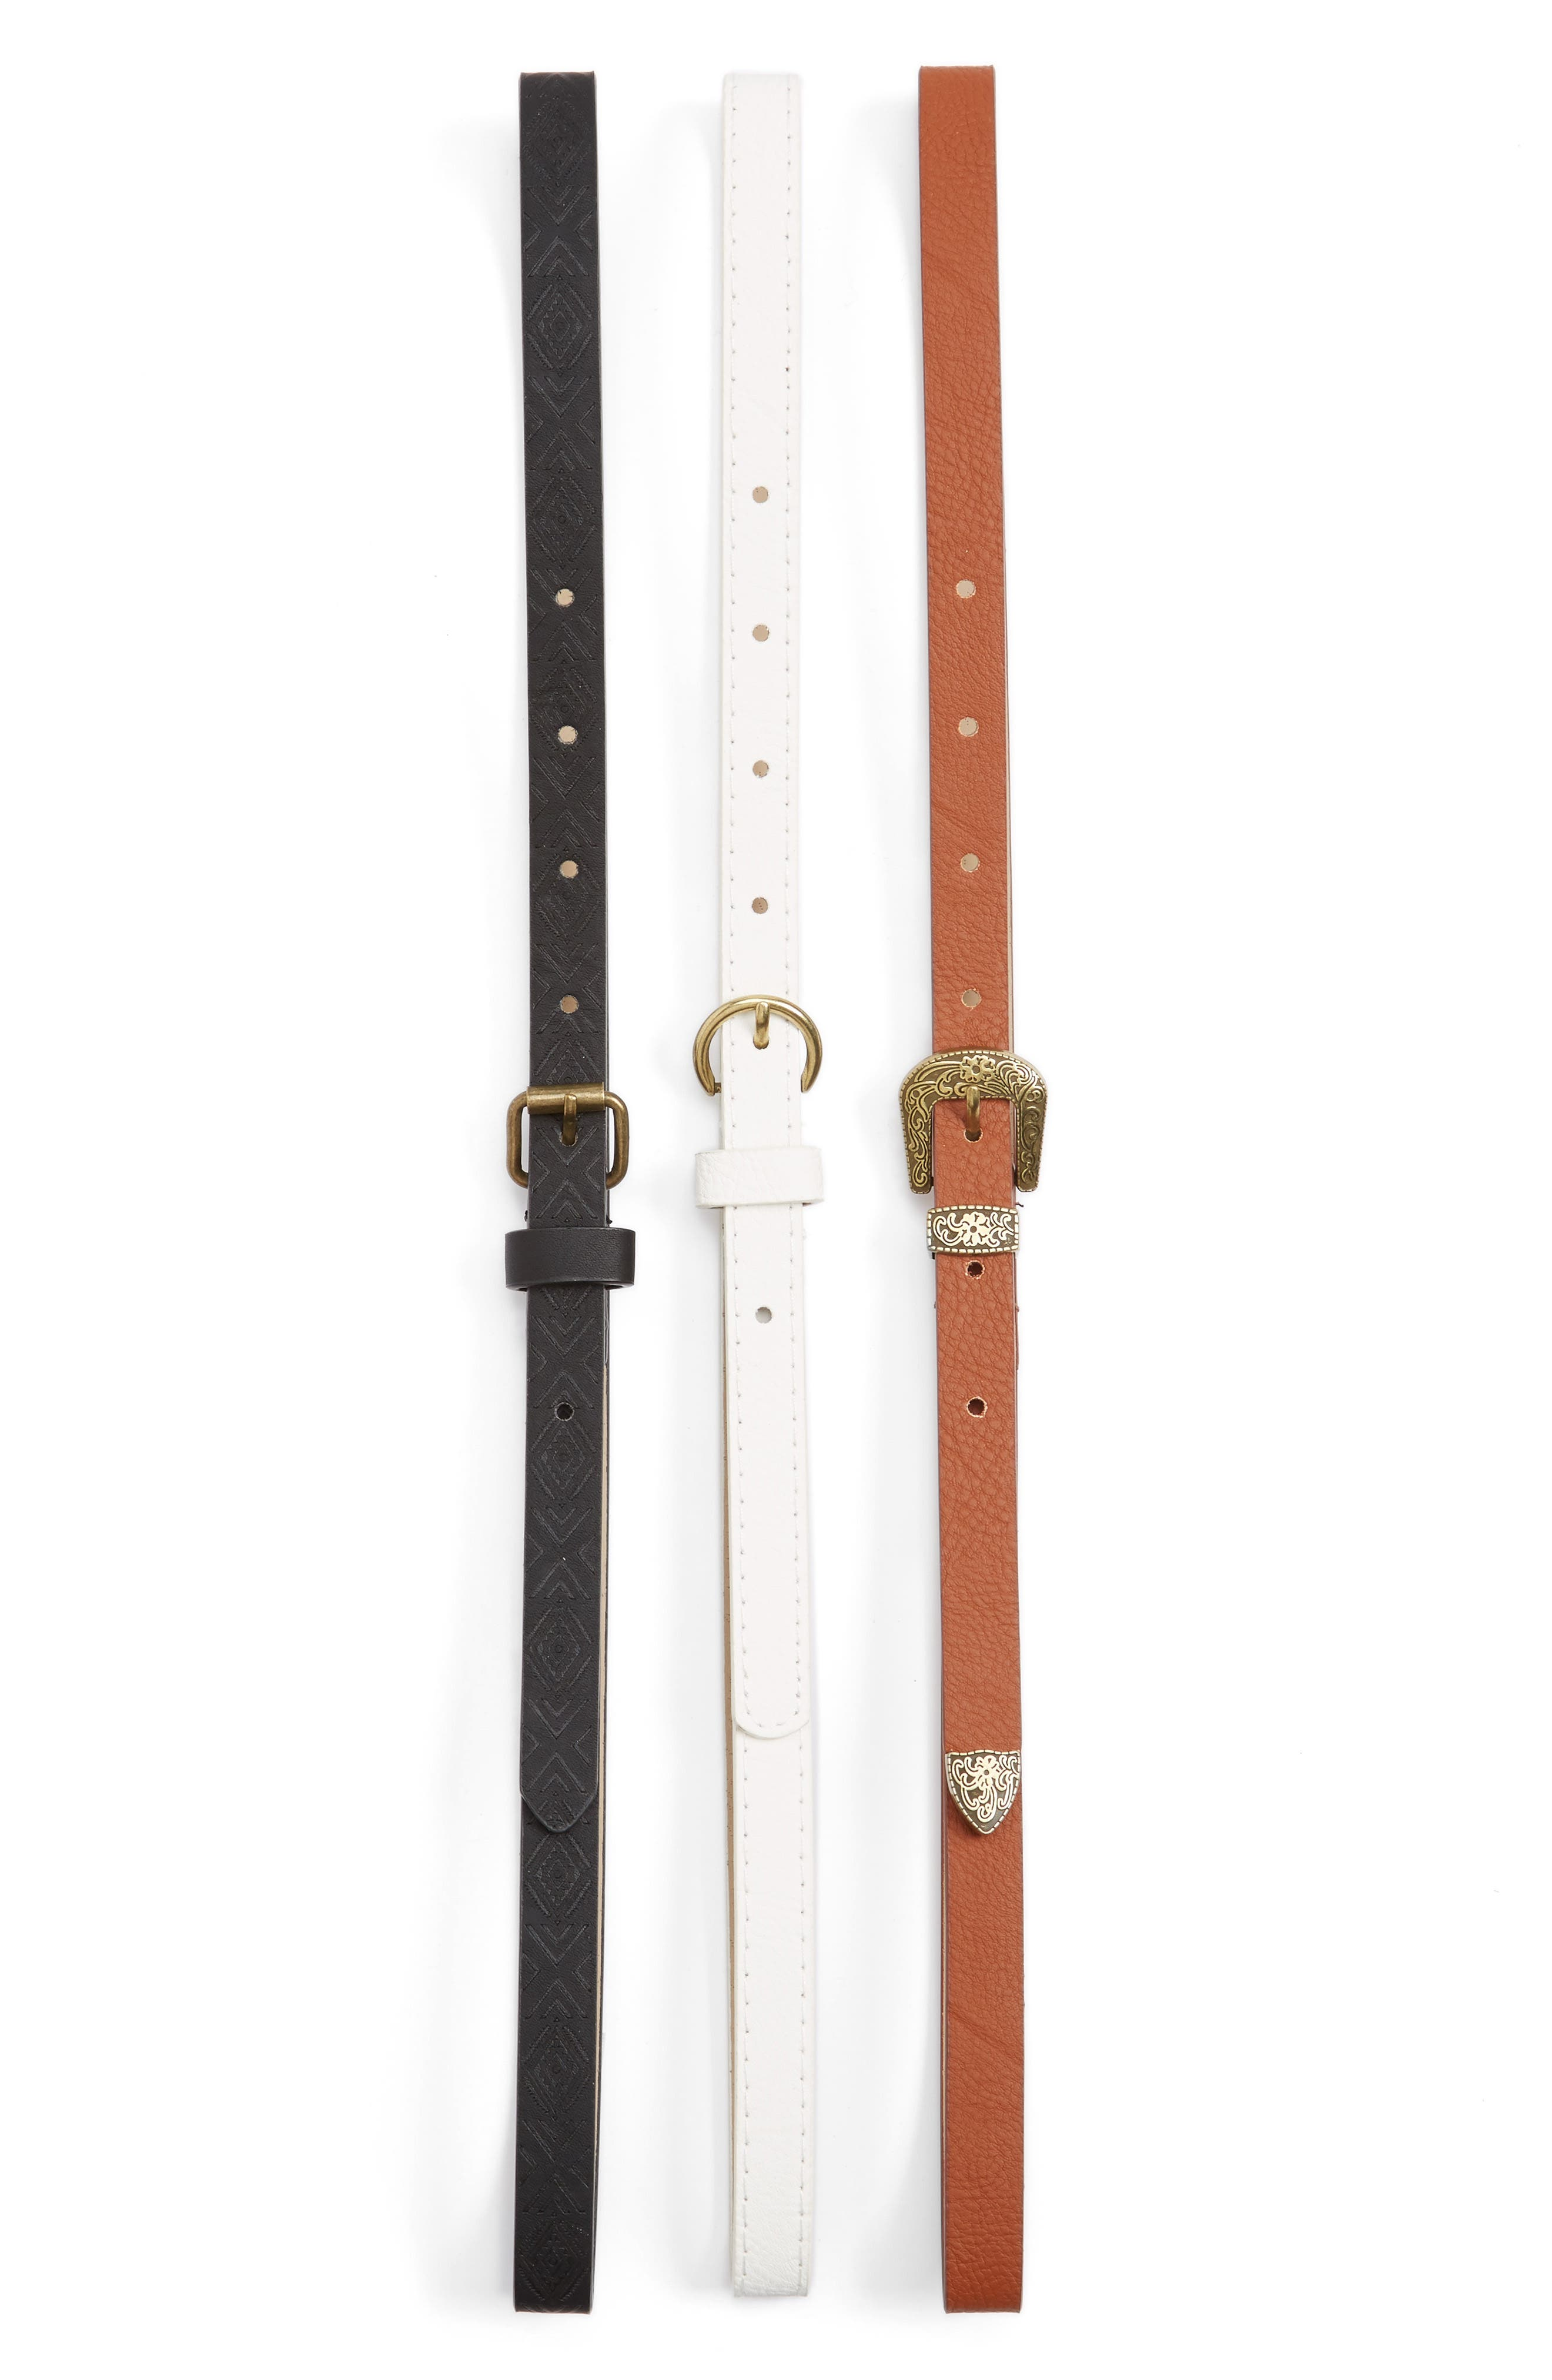 3-Pack Belts,                         Main,                         color, Multi White/ Black/ Brown